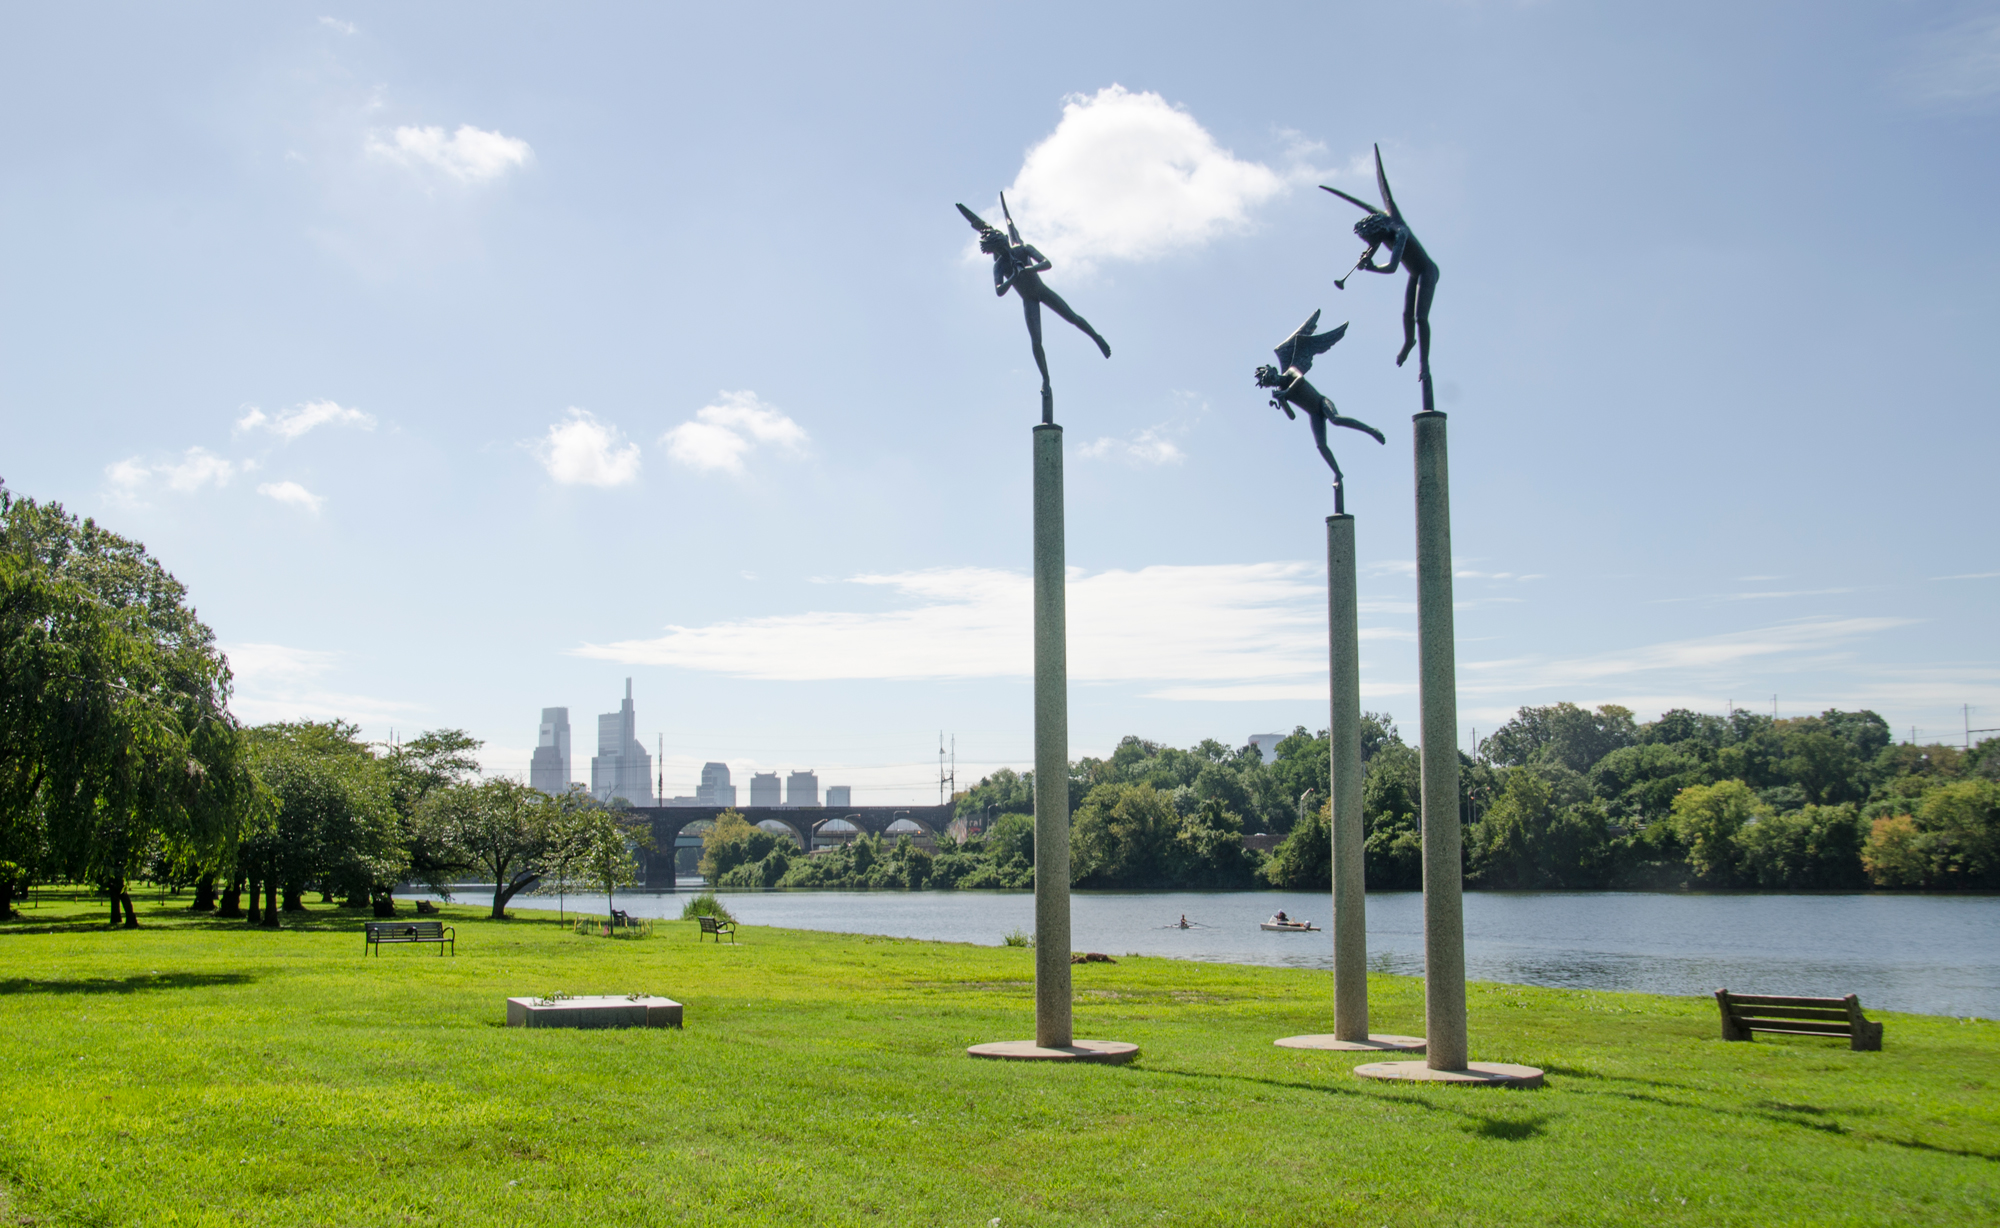 Angel sculptures with the Philadelphia skyline and Schuylkill River in the background